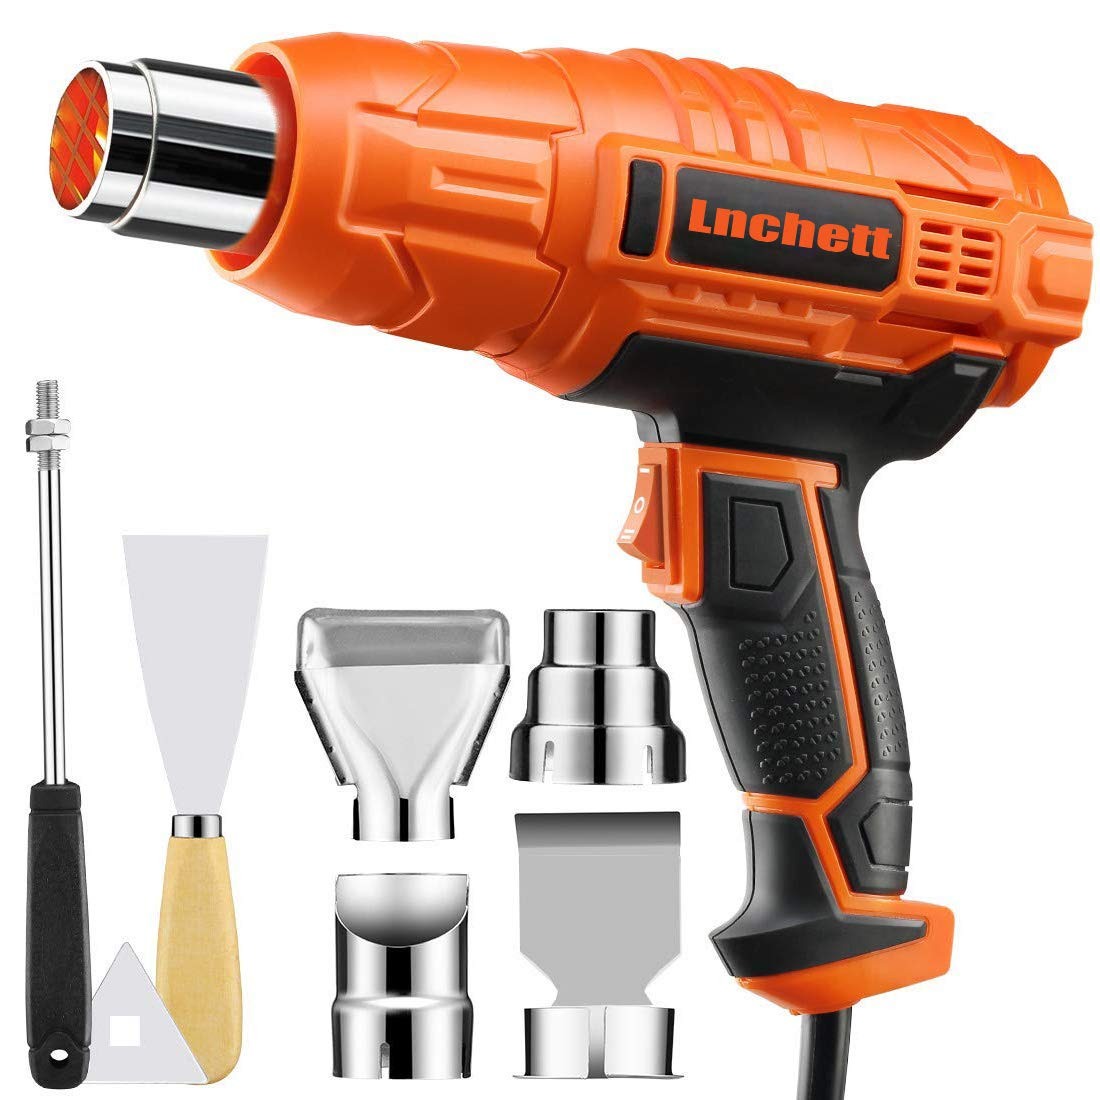 Dual Temperature Heat Gun with 7 Multi purpose Attachments Max Temperature up to 1210°F High Power Hot Air Gun with Overload Protection Perfect for Crafts Shrinking PVC Stripping Paint